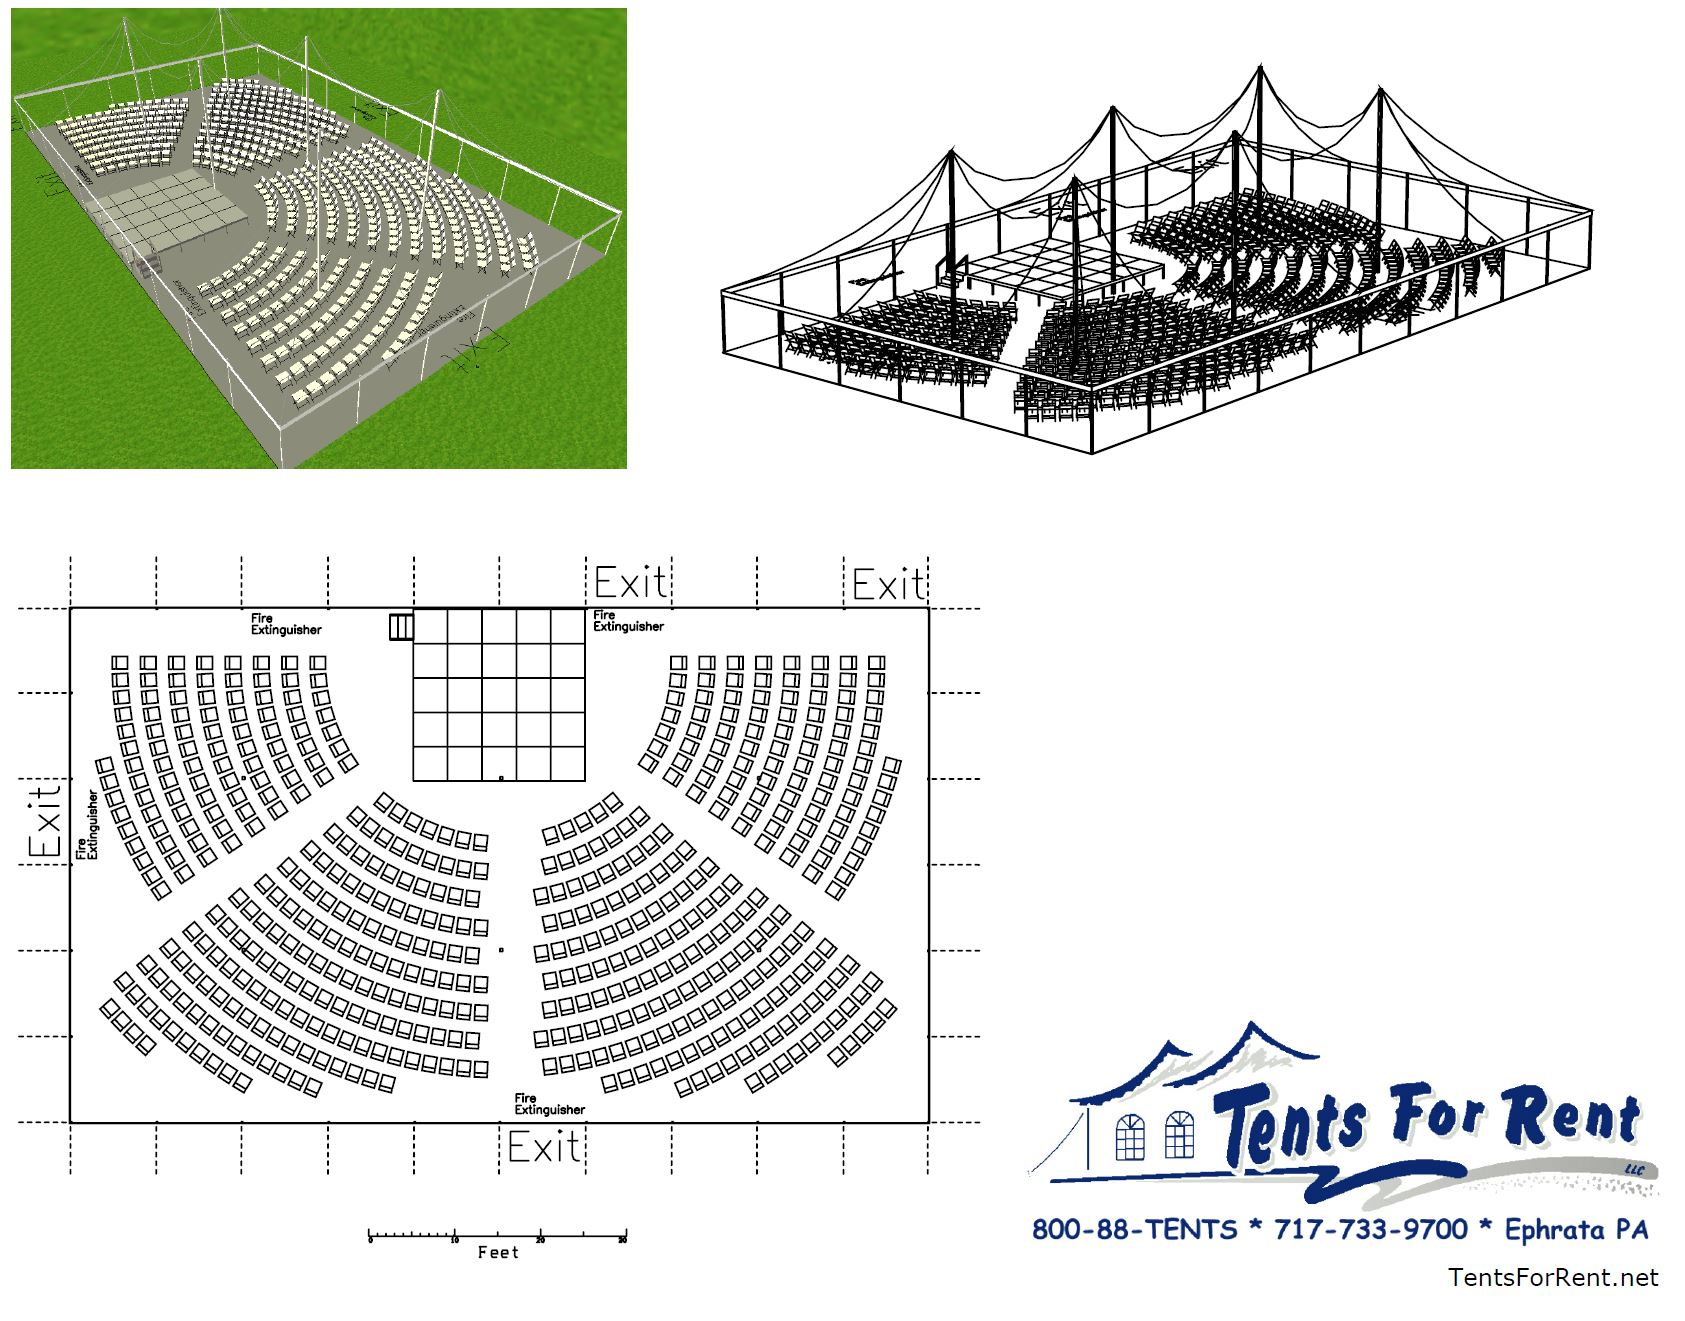 Outdoor event CAD drawing layout